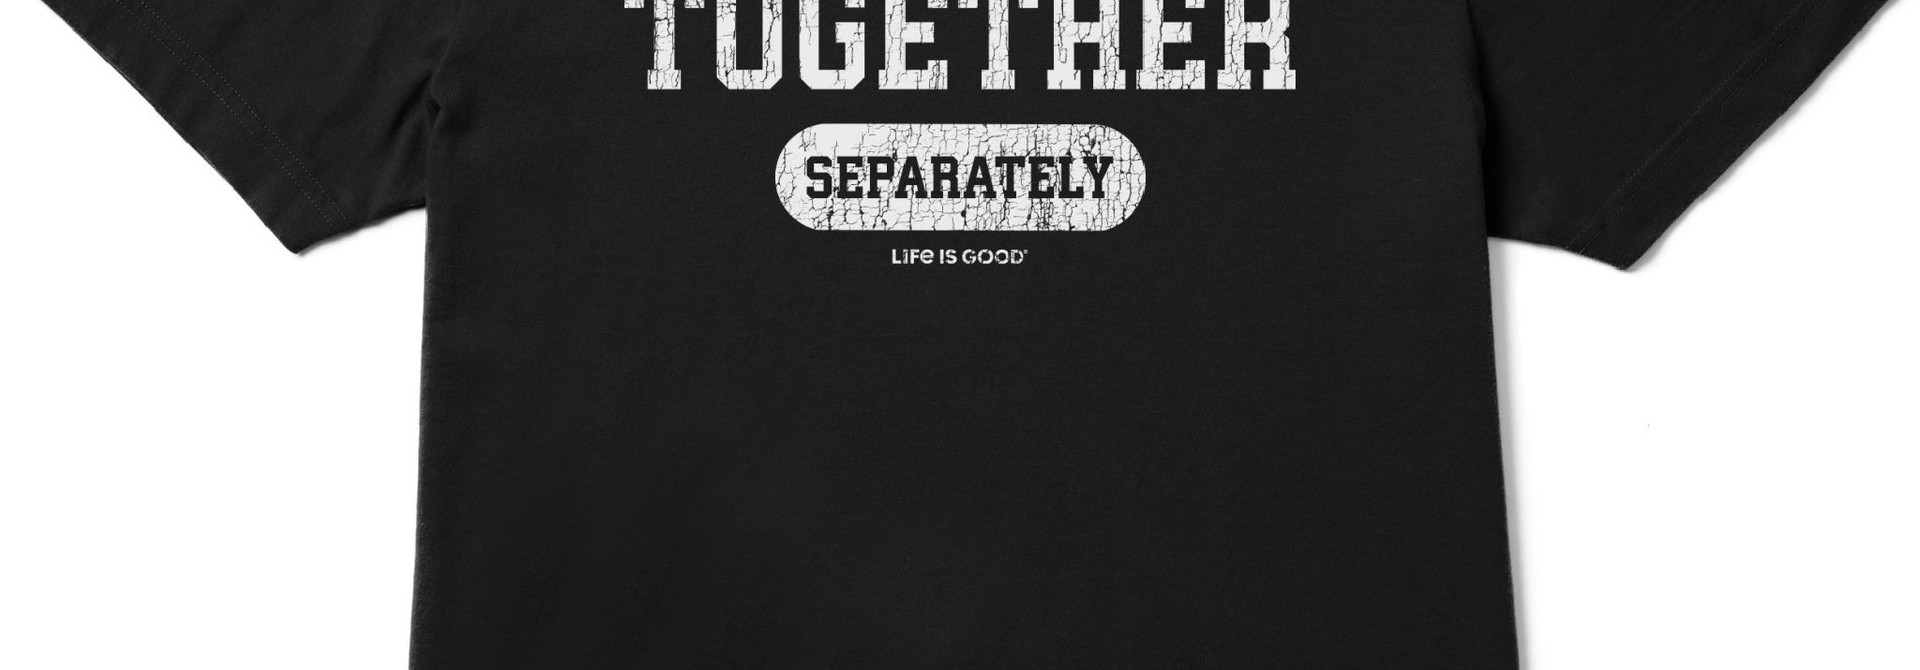 We're In This Together T-Shirt Life Is Good